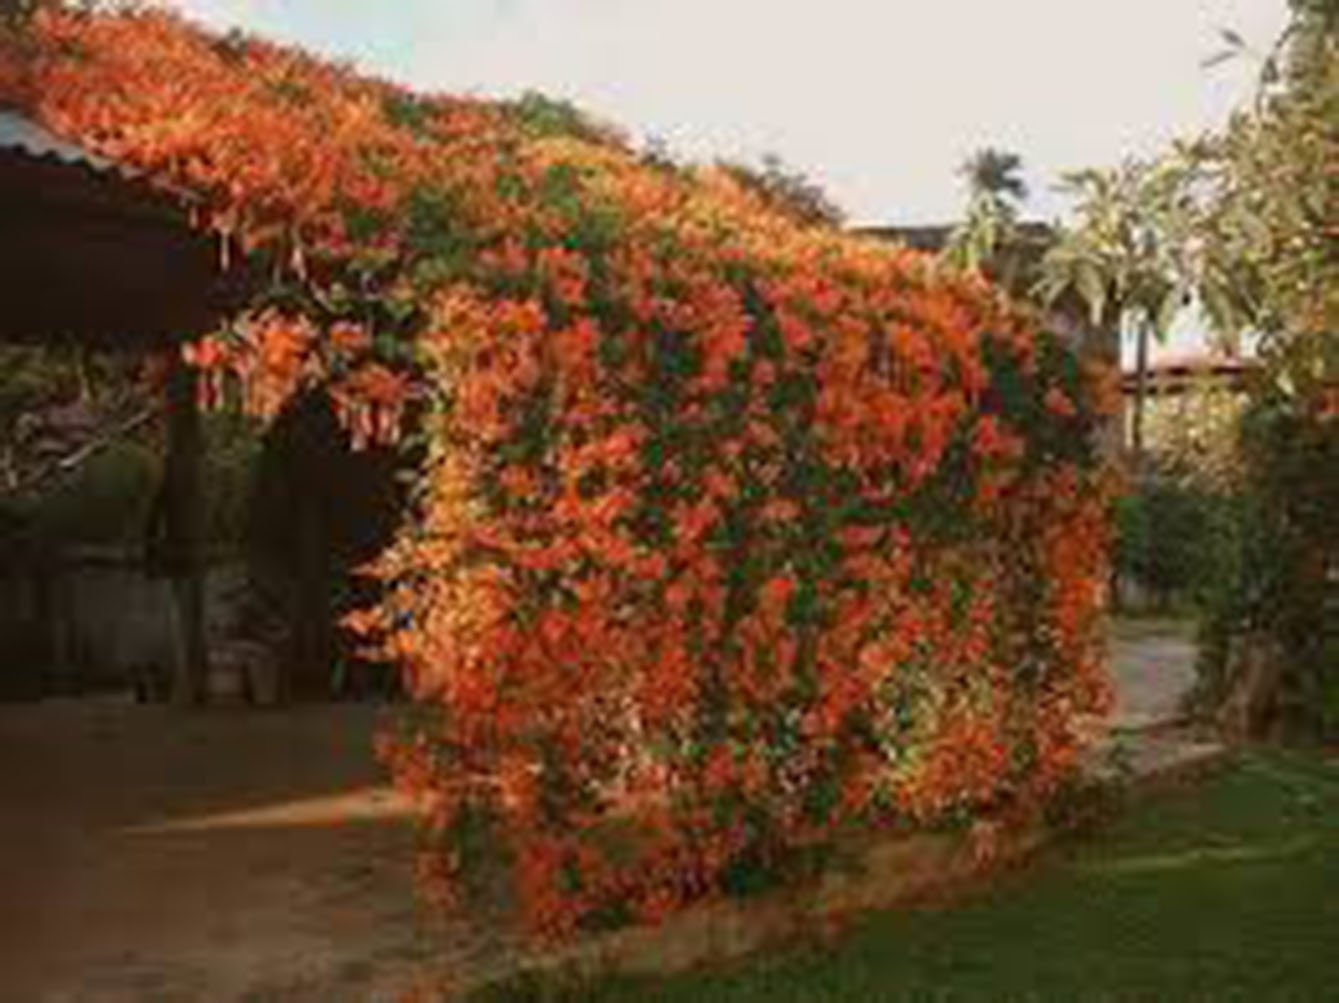 Trumpet Vine Creeper, Trumpet Flower, Campsis radican, (6) 16''-24'', Orange Flower, Orange Flowers, Vine, Vines, Hummingbird Vine, Hummingbird Flowers, Trumpet Vine Flower, Live Plants, Plant by Organic Heirloom Plants (Image #8)